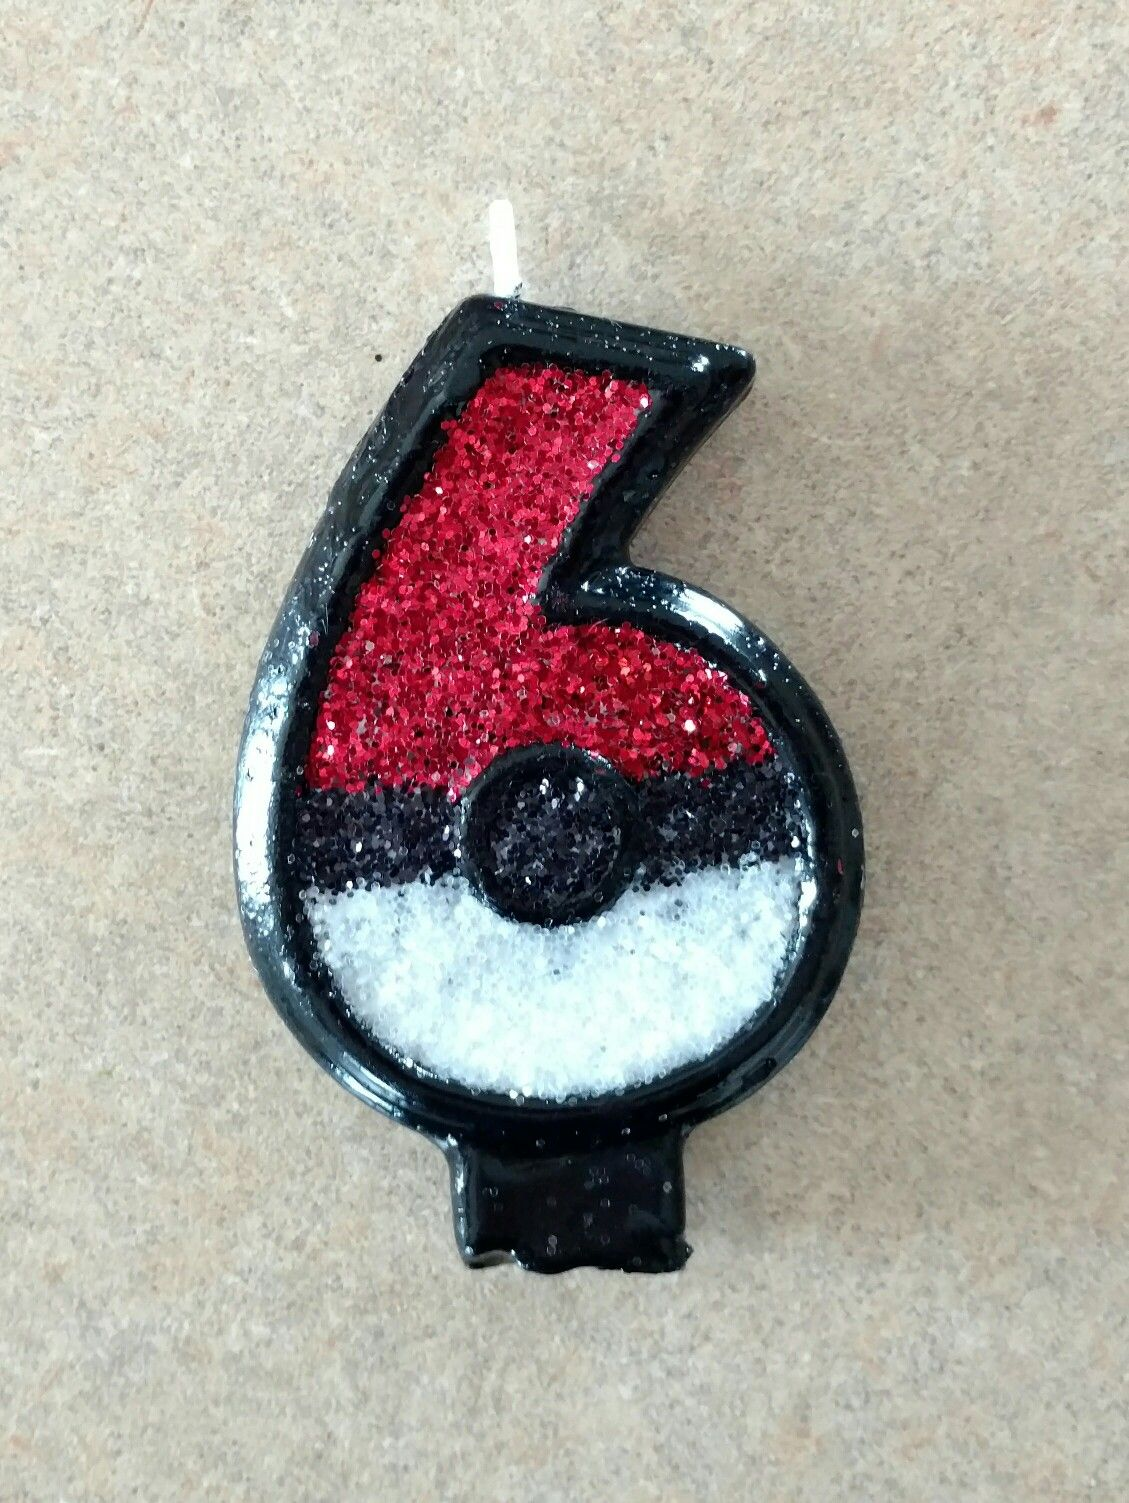 I Painted Glittered A Birthday Cake Candle To Look Like A Pokeball